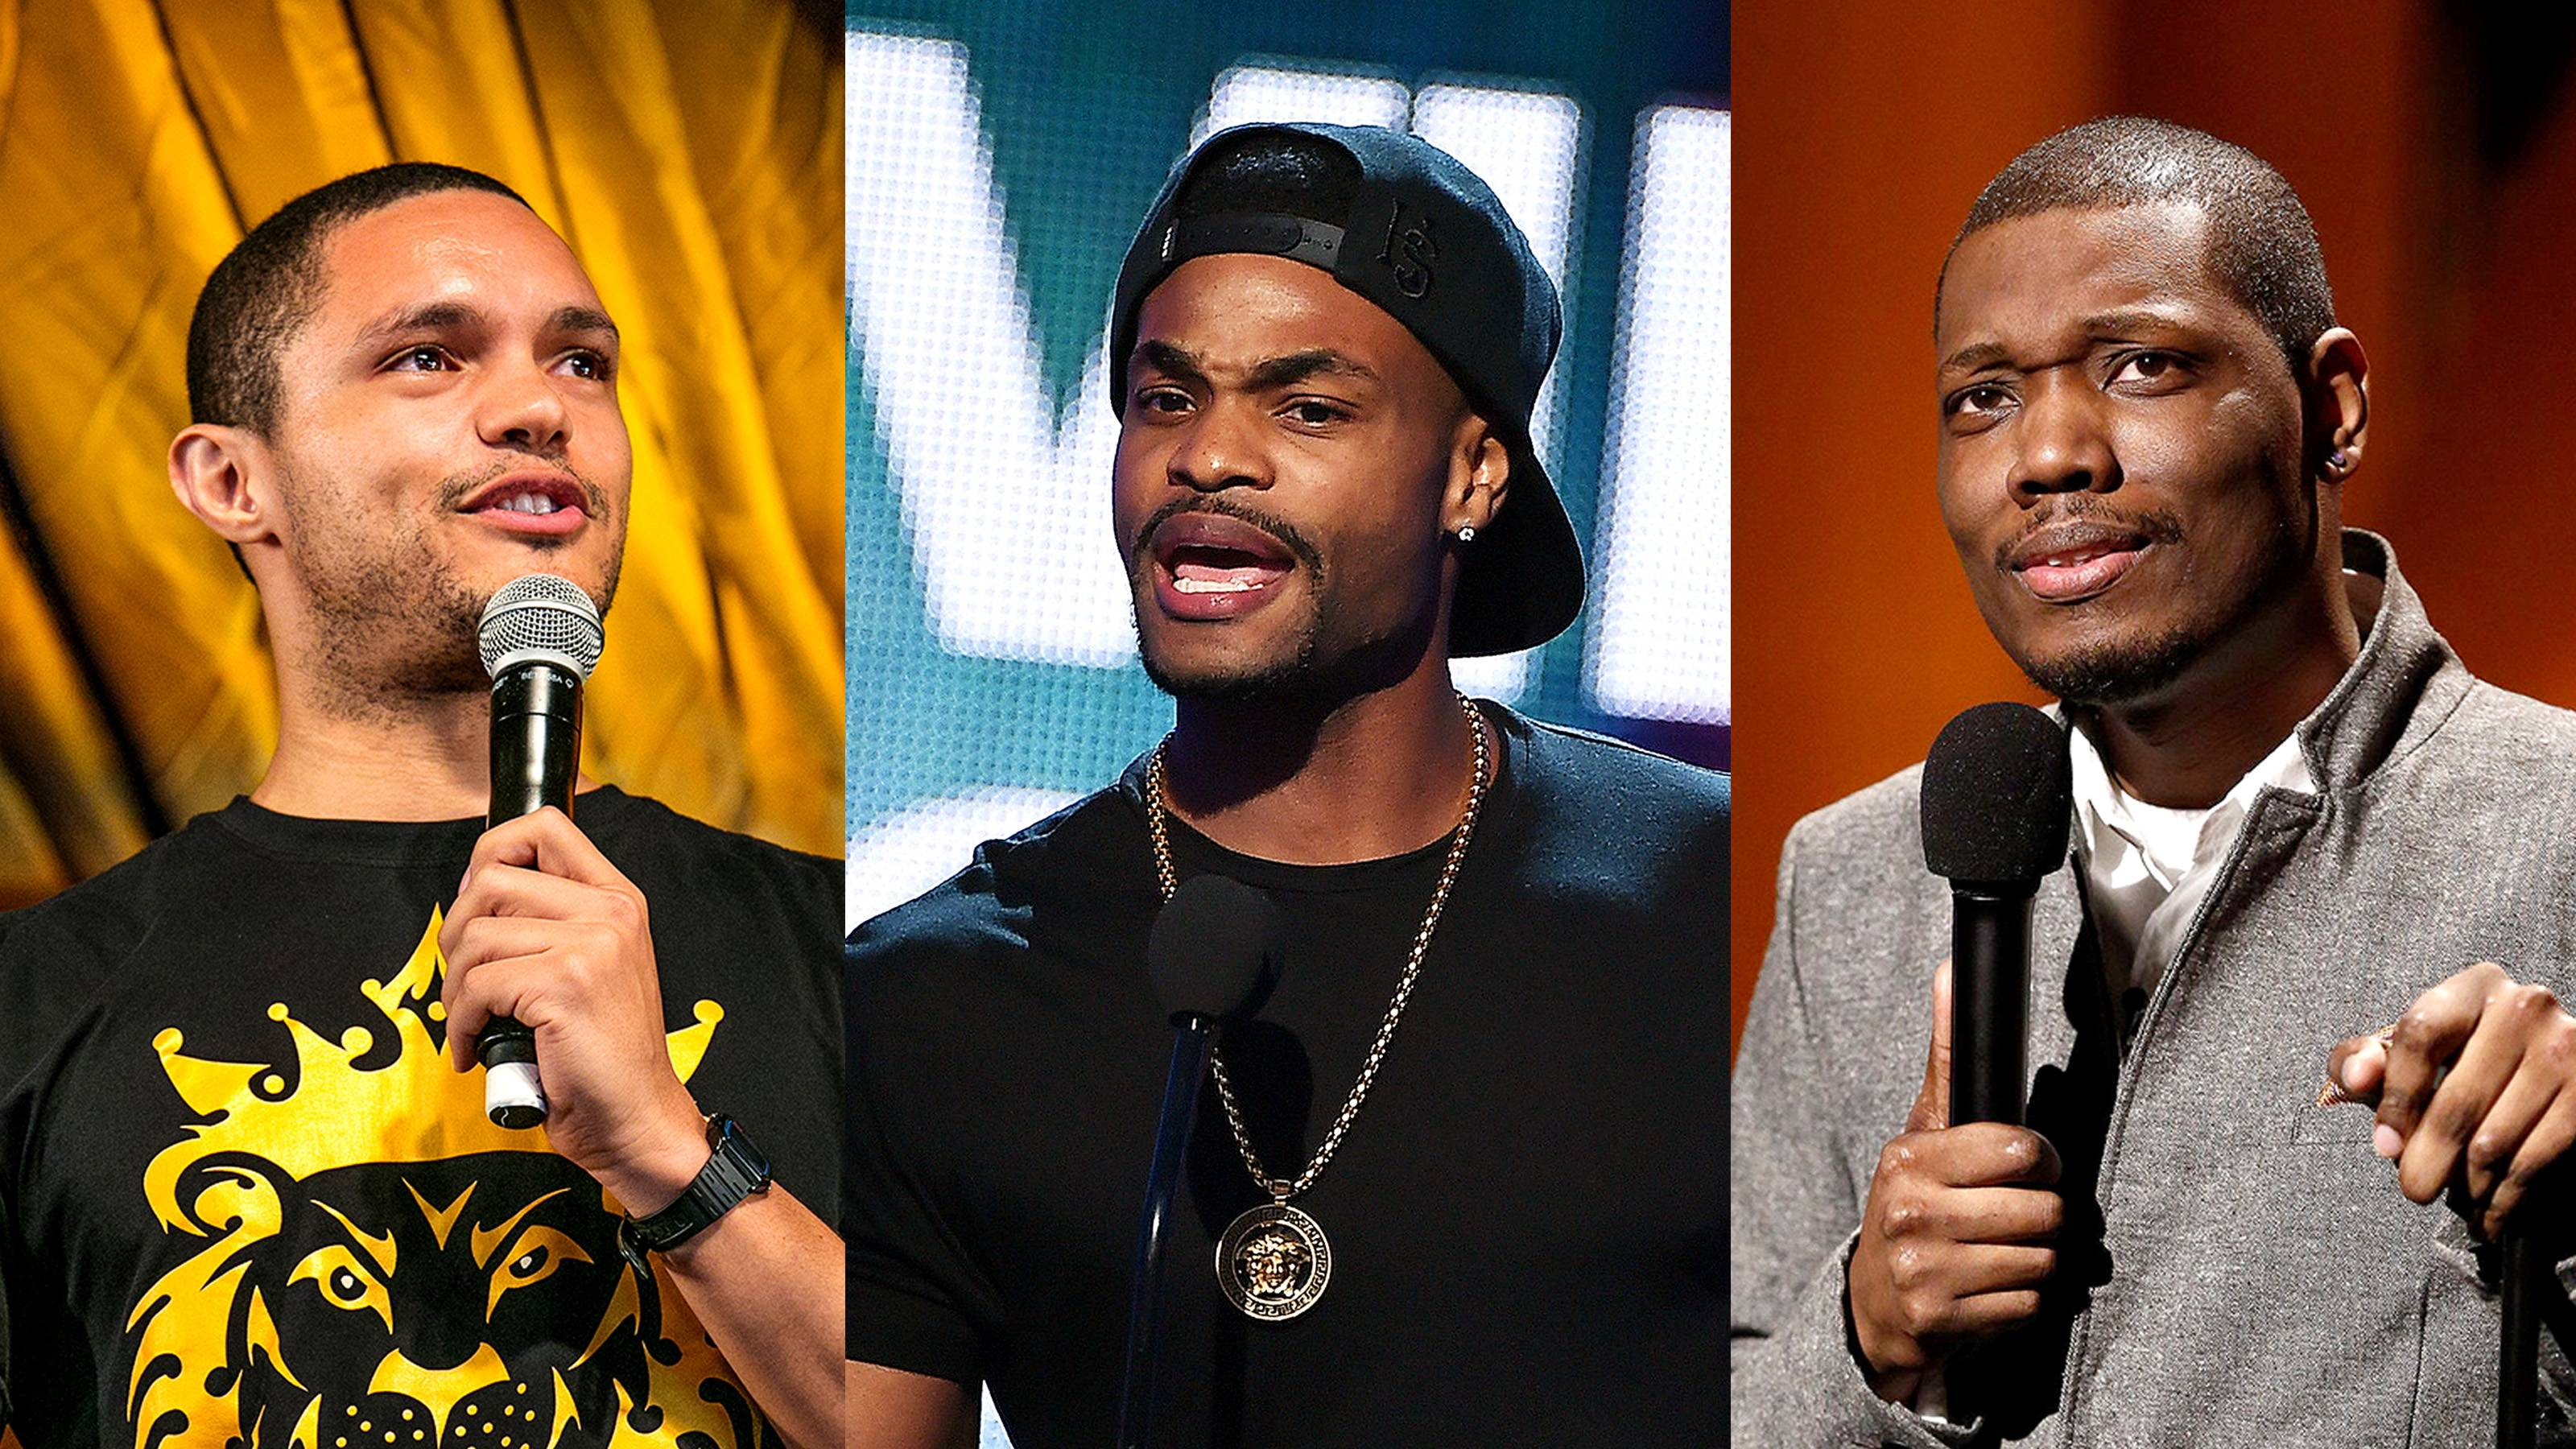 Top Rising Black Comedians Hosting TV Shows - Lately, there seems to have been an influx of comedians, specifically Black comedians, who are taking over TV shows left and right. In honor of this achievement, here's a list of the rising comedians turned TV hosts/personalities that you should know.   (Photos from Left: WENN, Kevin Winter/Getty Images for Dick Clark Productions, Peter Kramer/NBC/Getty Images)